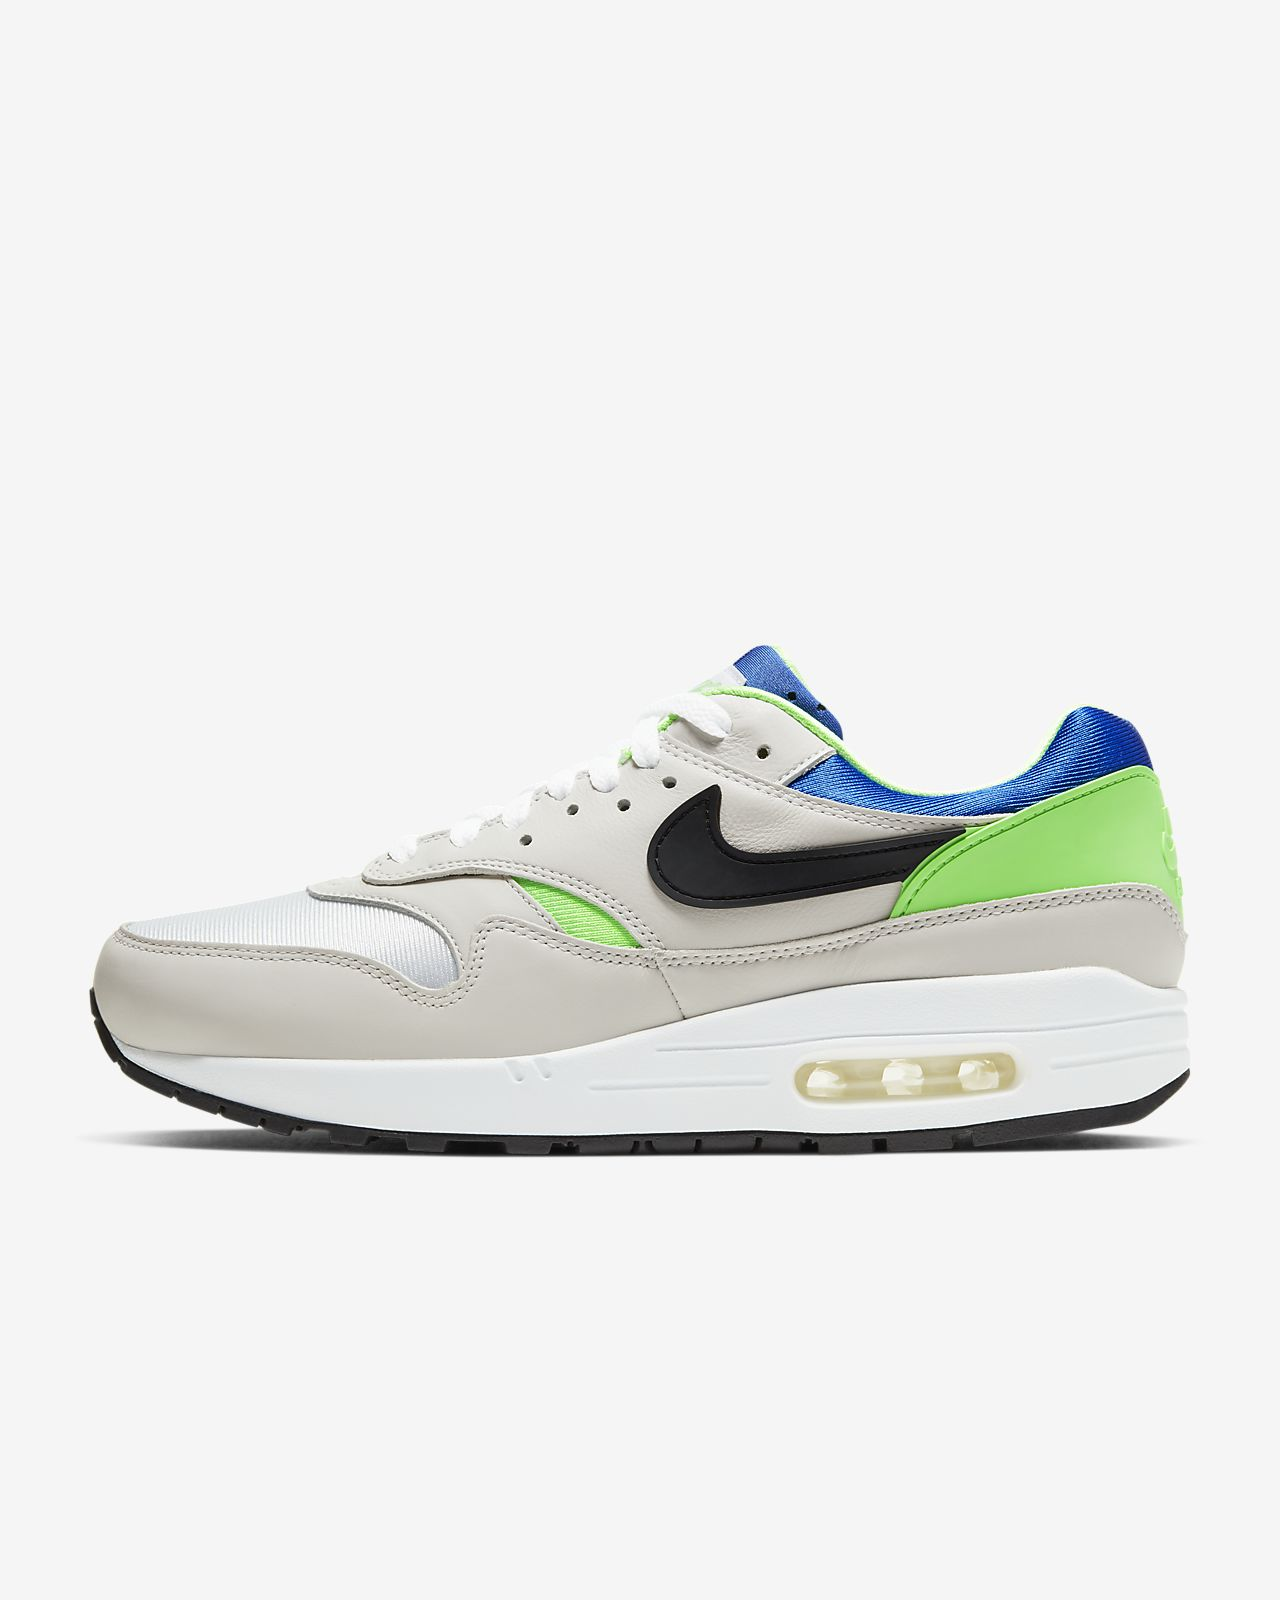 Nike Sale $19 on in 2019 | Shoes, Cheap nike air max, Shoes